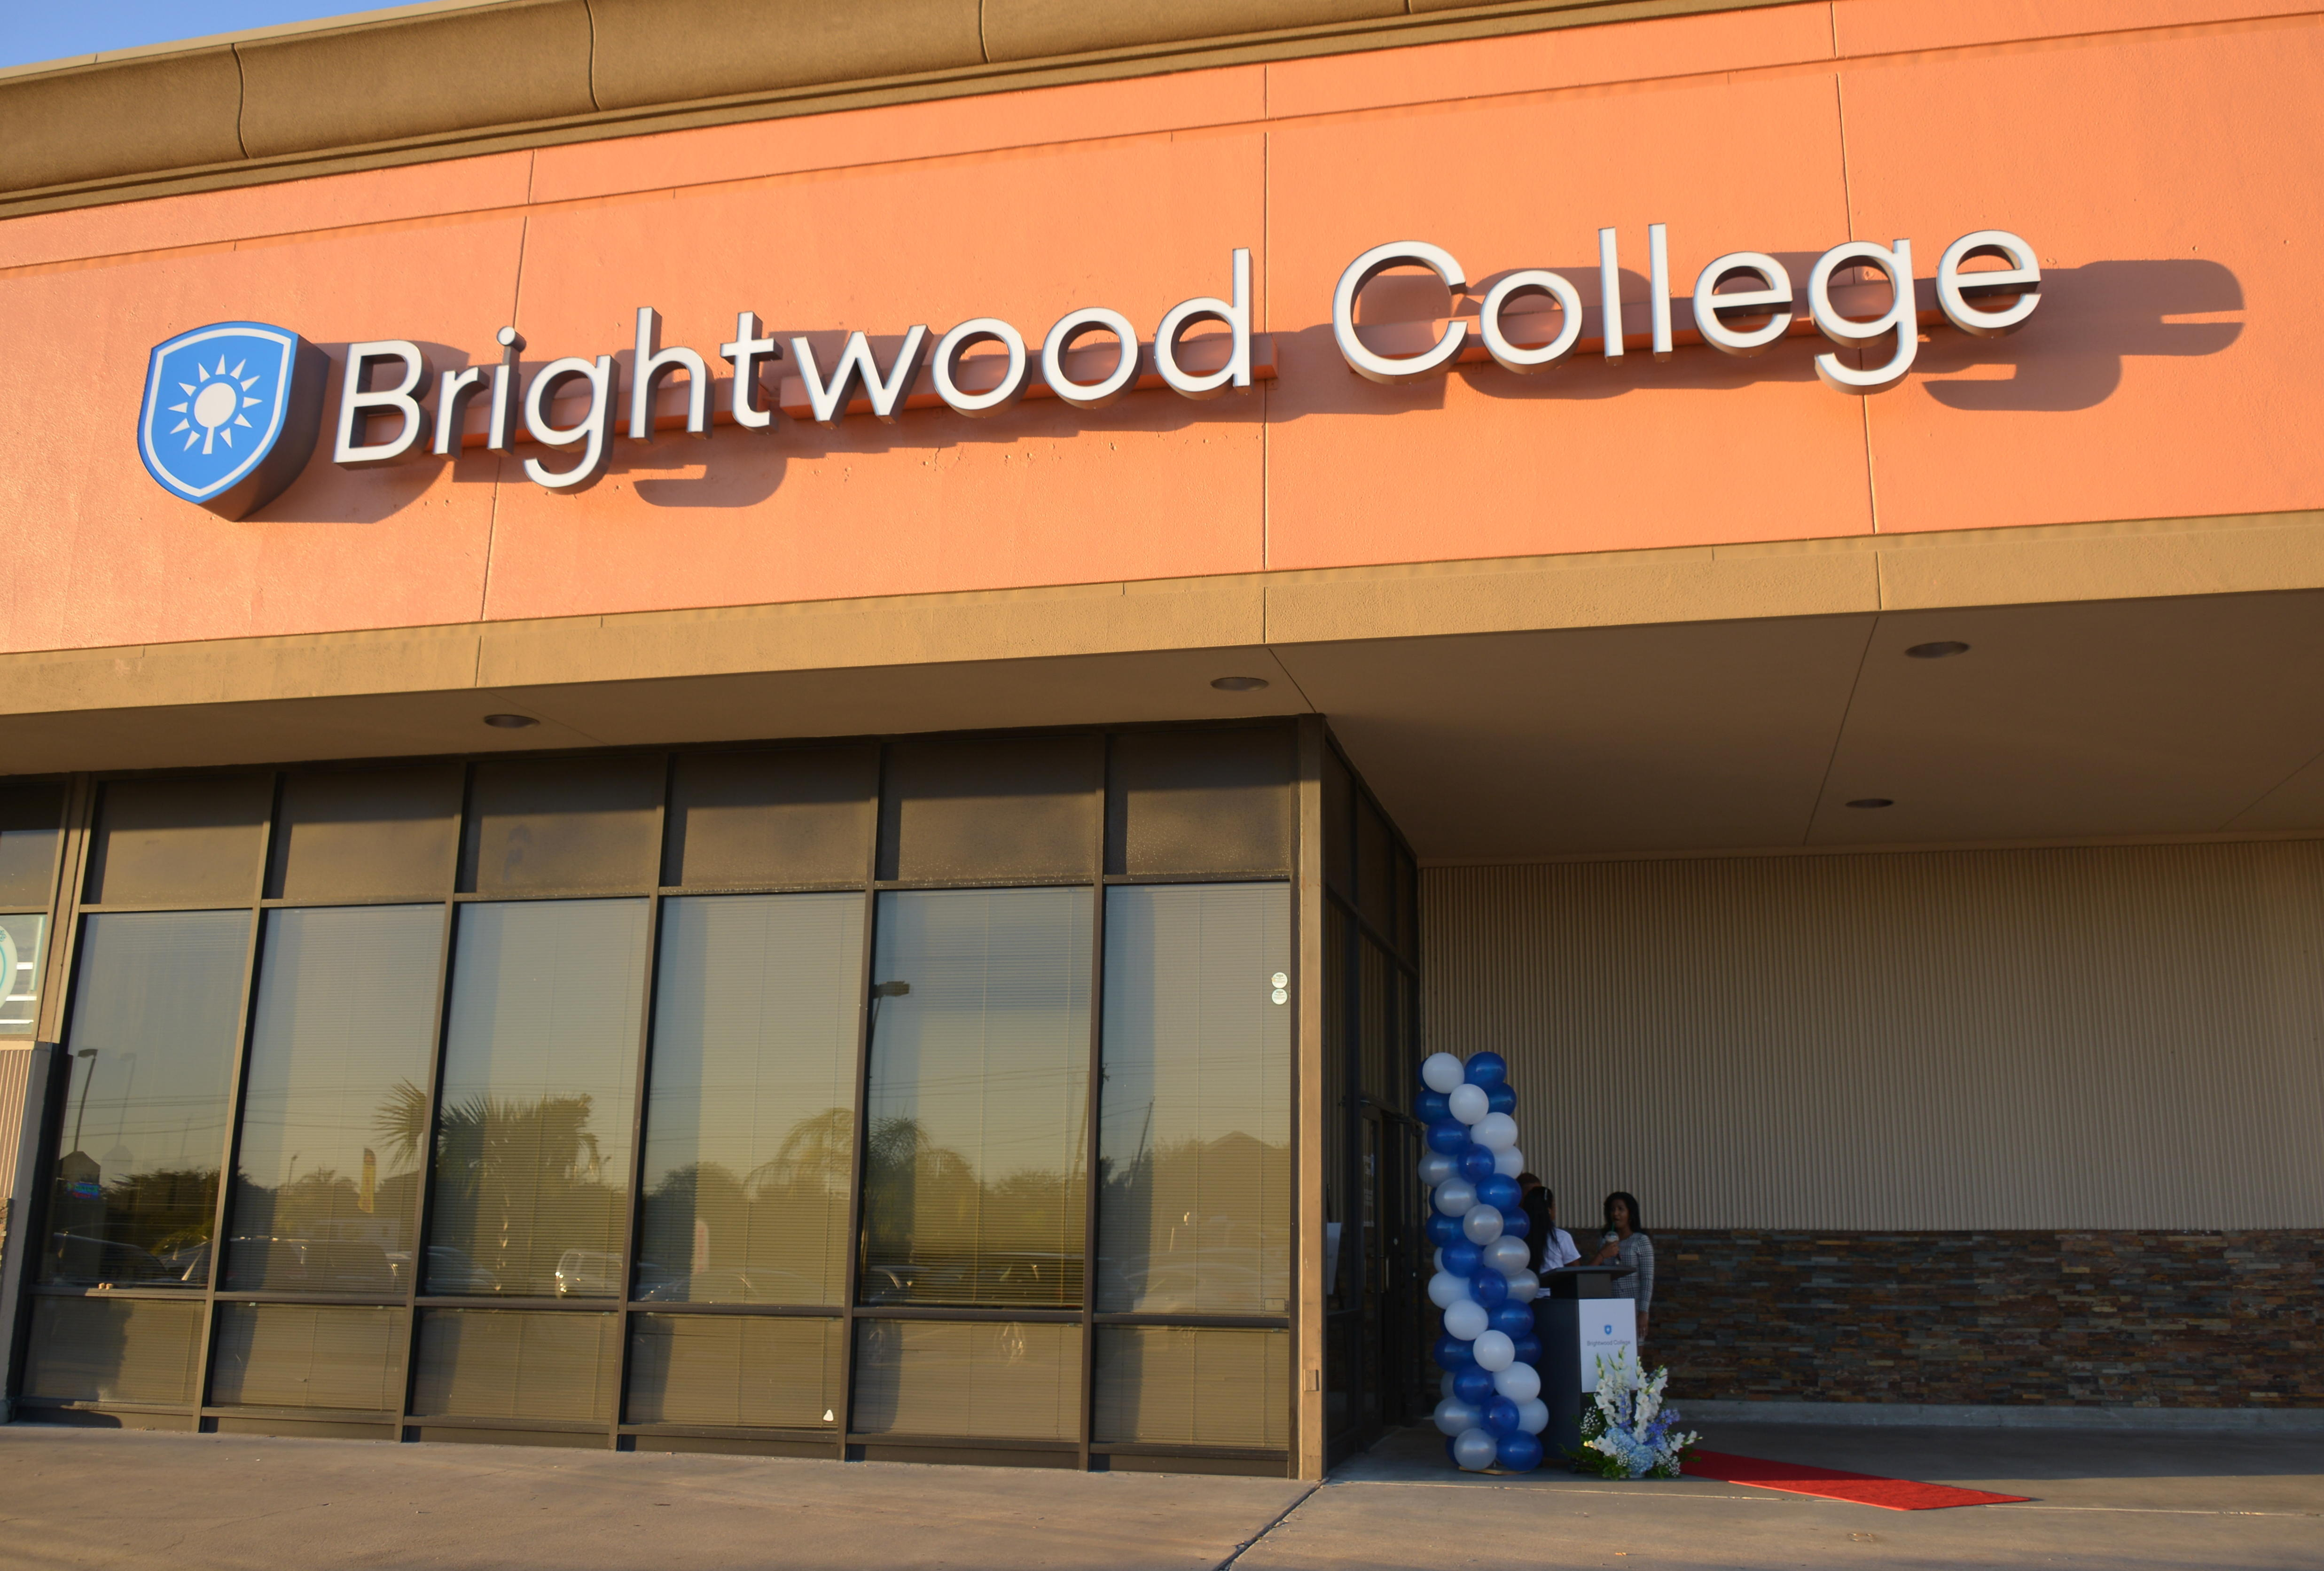 Brightwood College in Friendswood image 0